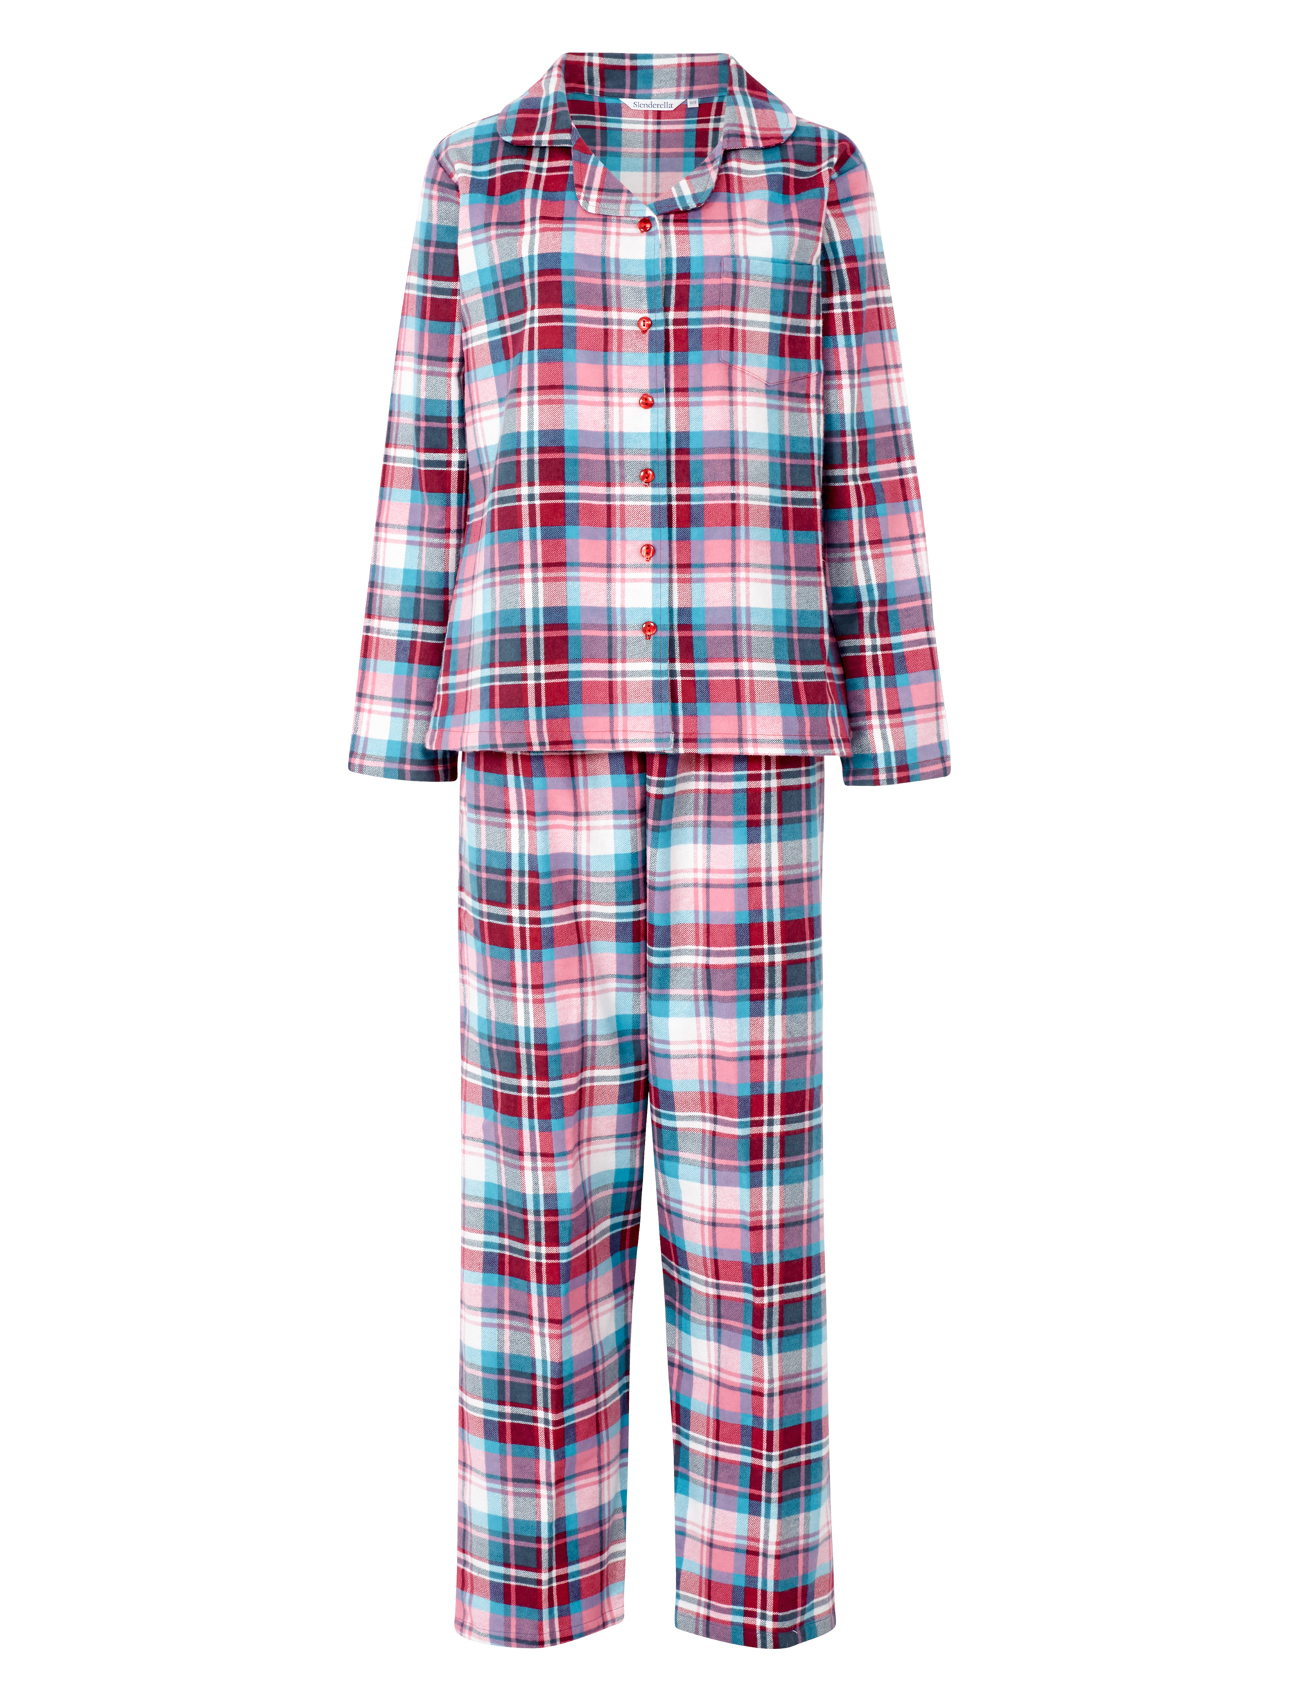 Shop eBay for great deals on Check % Cotton Sleepwear & Robes for Women. You'll find new or used products in Check % Cotton Sleepwear & Robes for .